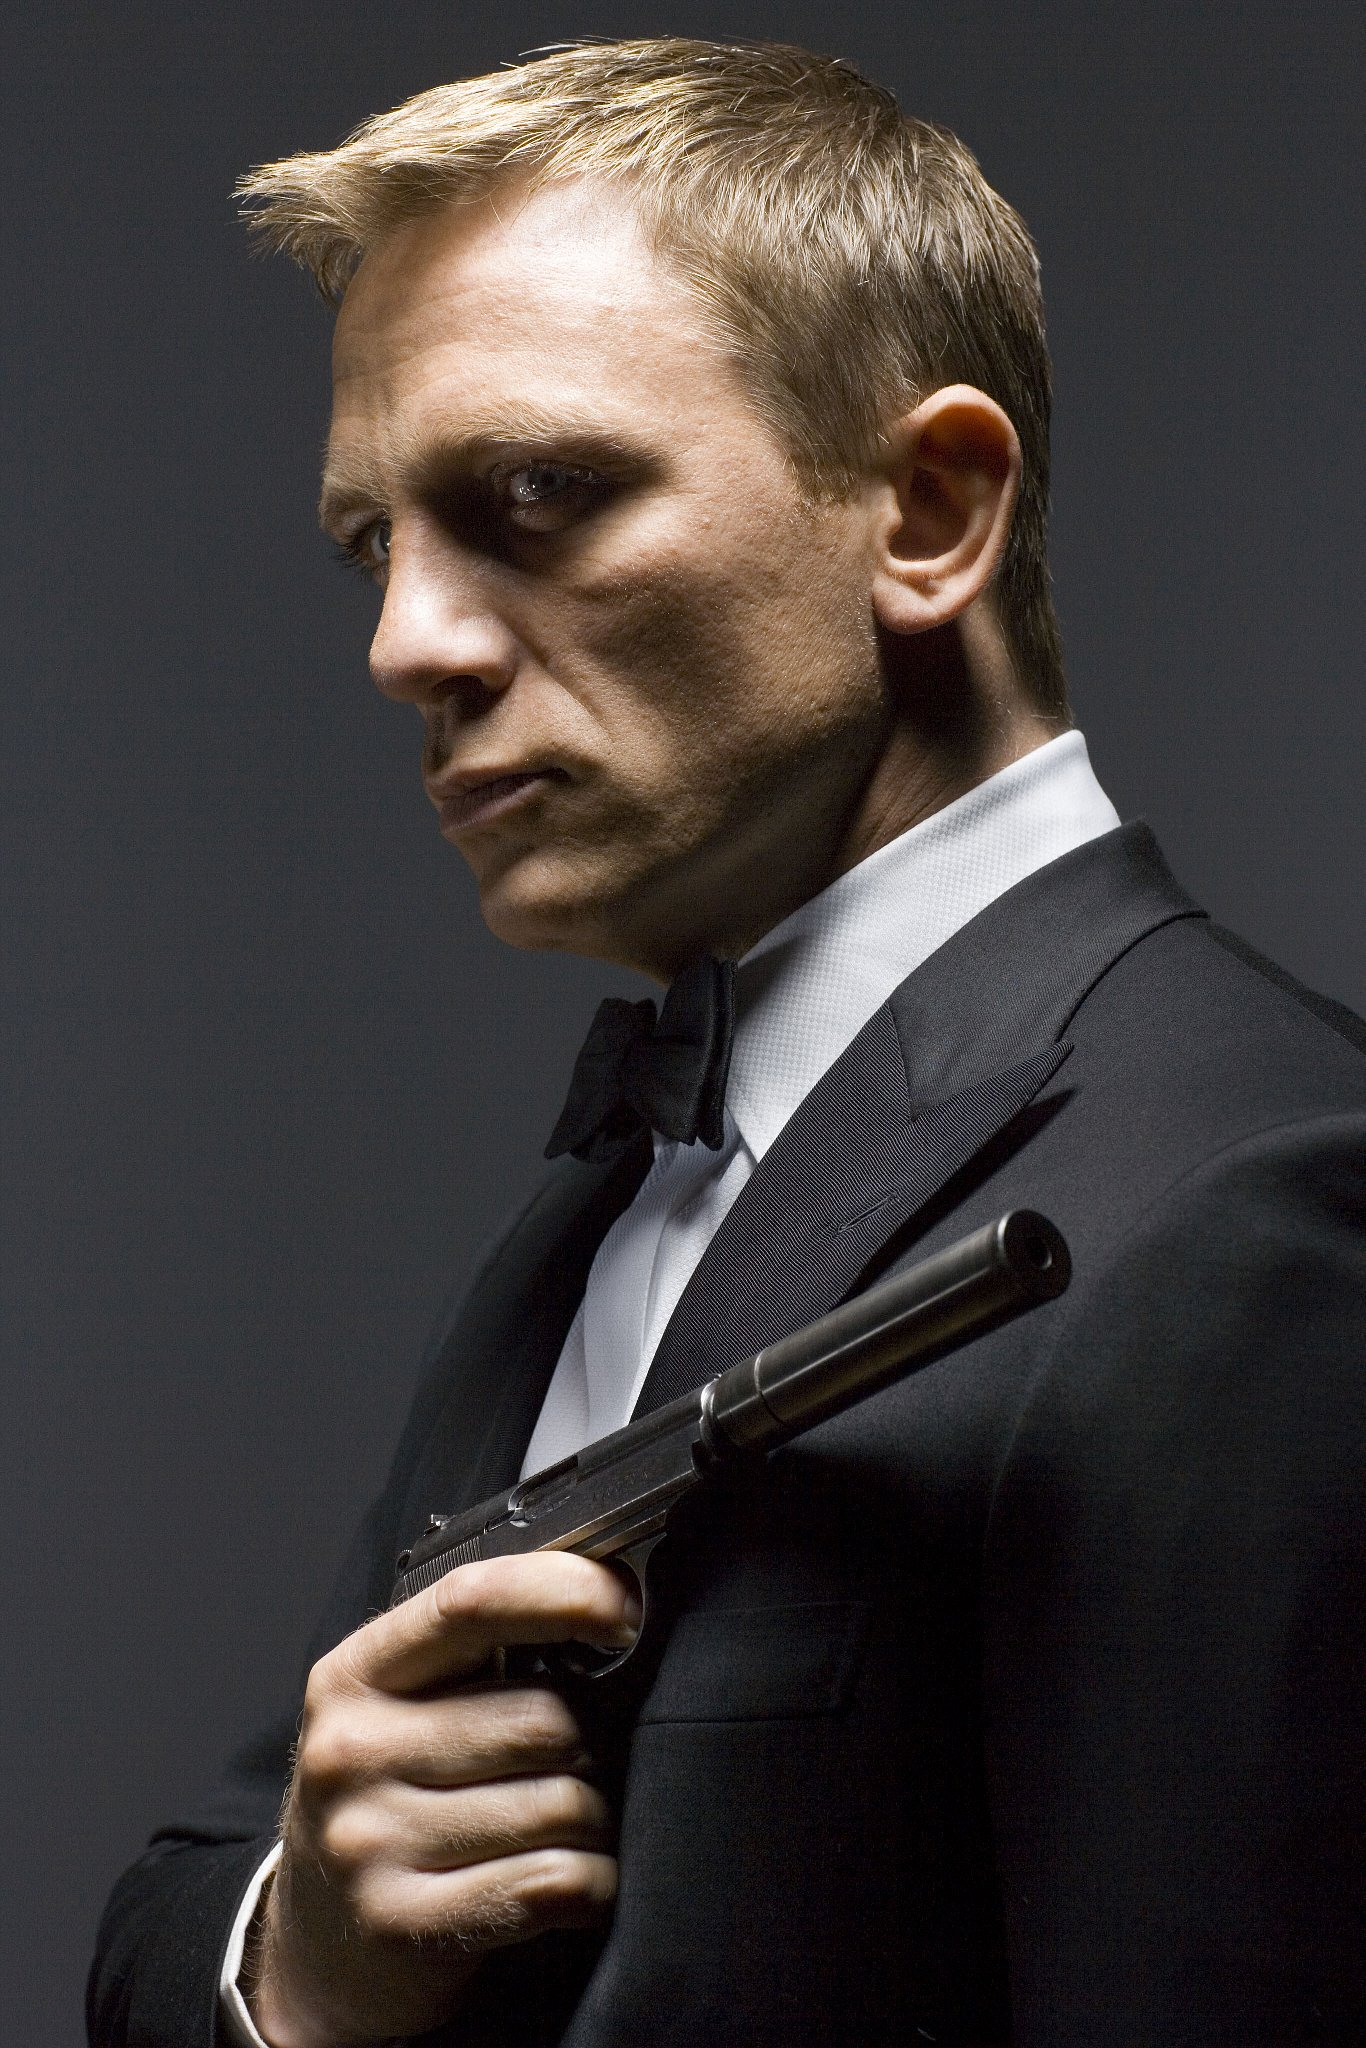 The Daniel Craig James Bond Trilogy: A Review by GMS | Two ...